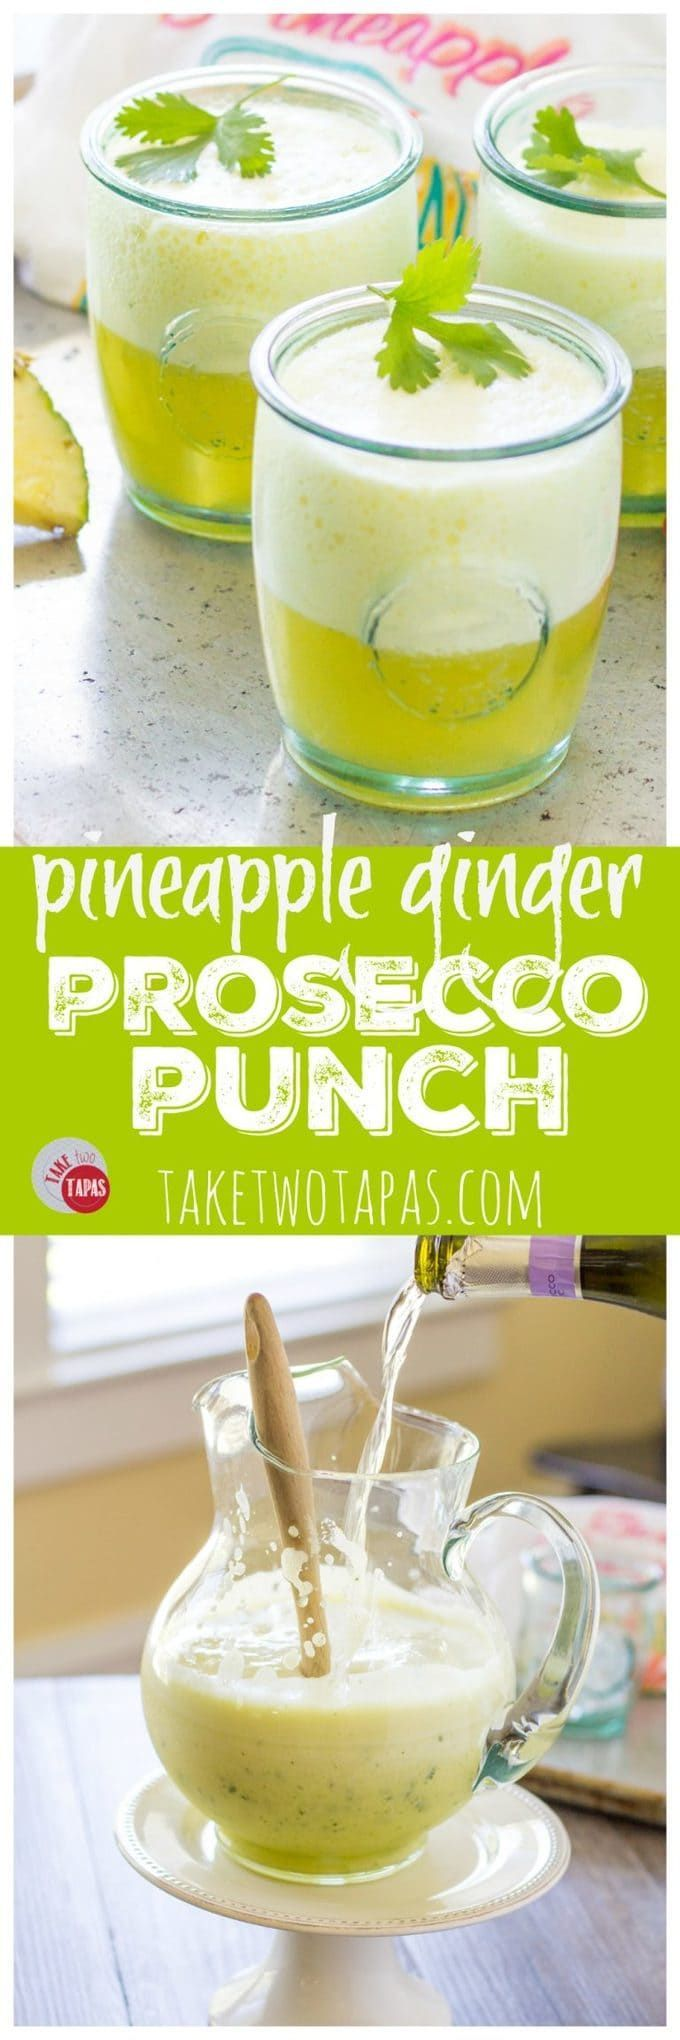 This pitcher style pineapple ginger prosecco punch is perfect for an intimate party or a full blown celebration! Make ahead and add the prosecco at the last minute for a bubbly and refreshing cocktail! Mocktail version available too! Pineapple Ginger Prosecco Punch Recipe | Take Two Tapas